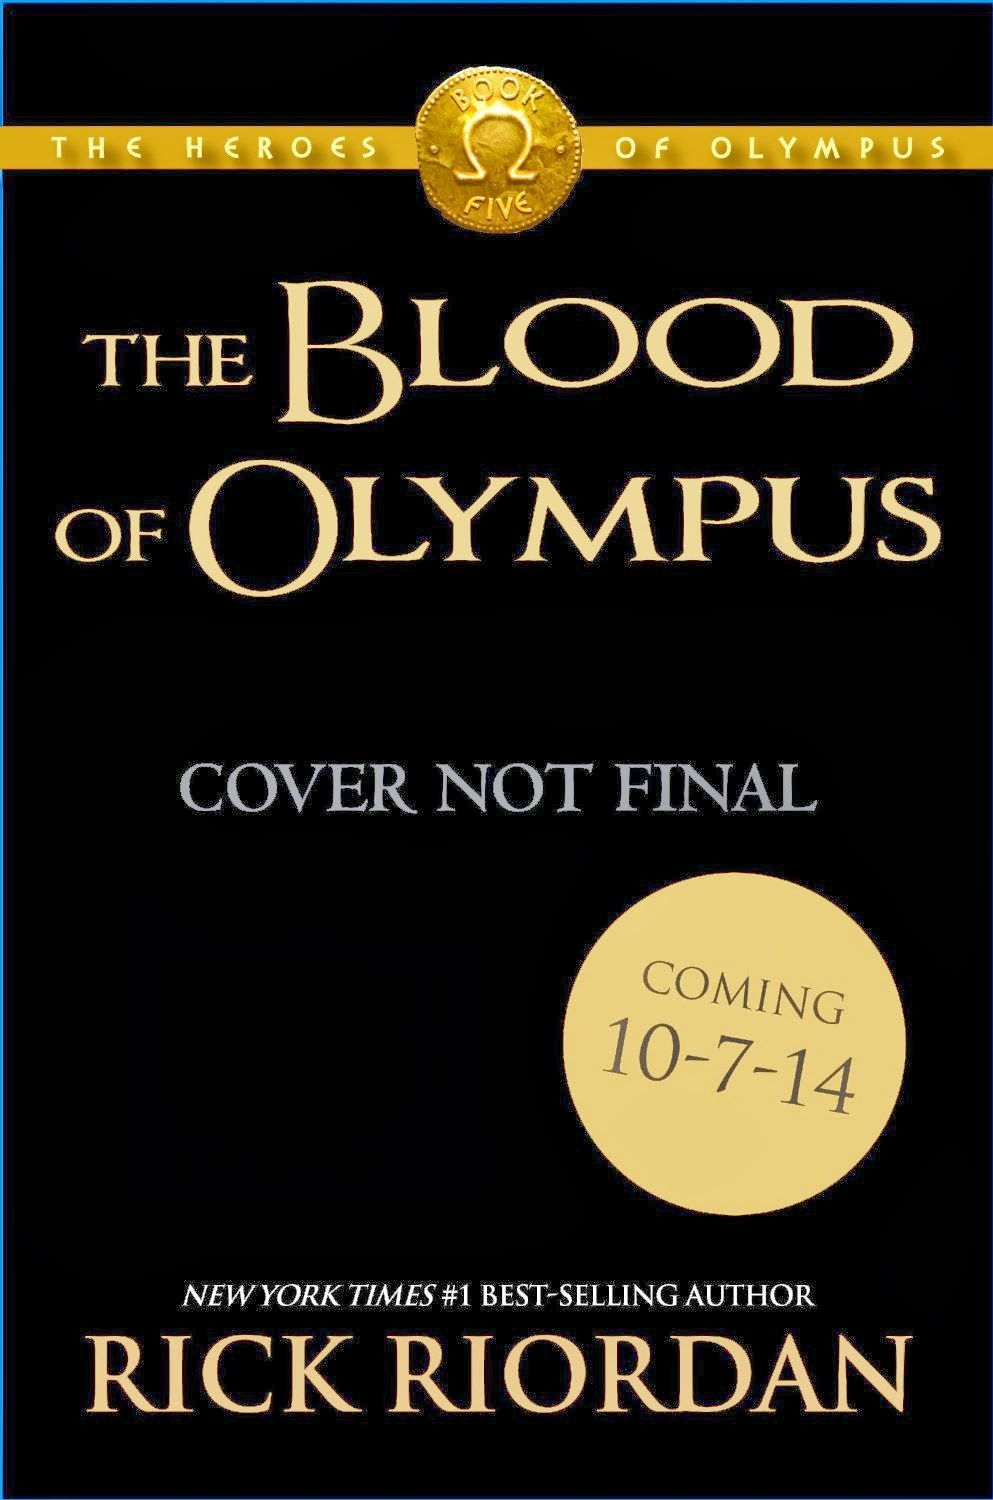 The Heroes of Olympus: The Blood of Olympus by Rick Riordan